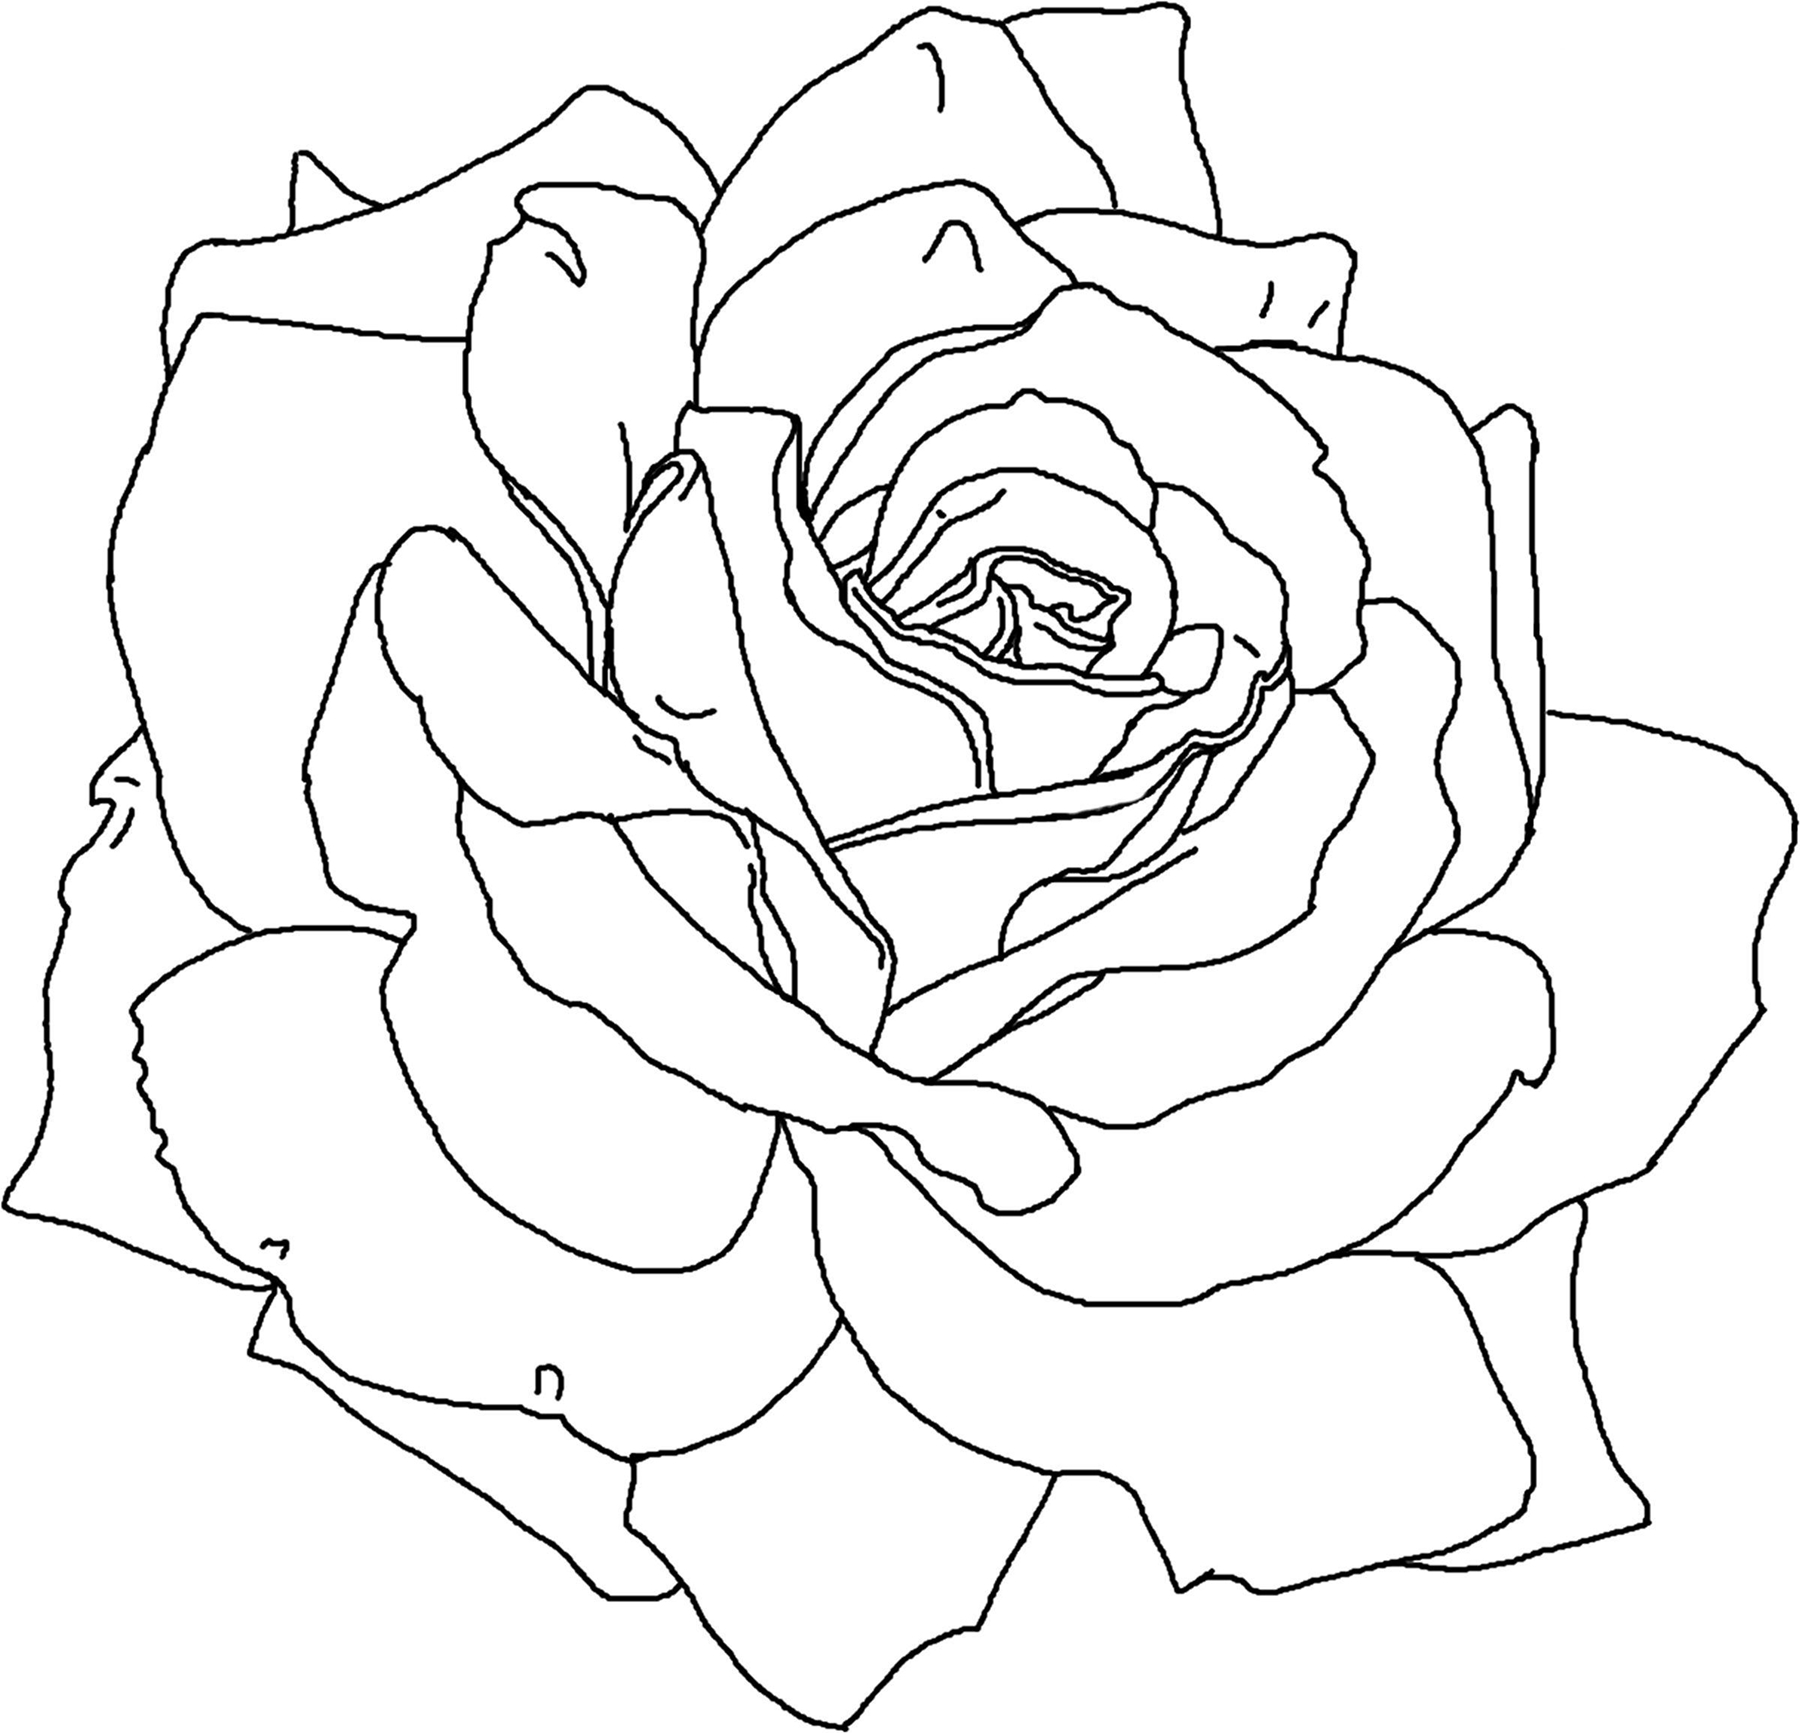 flower drawing coloring pages - photo#20